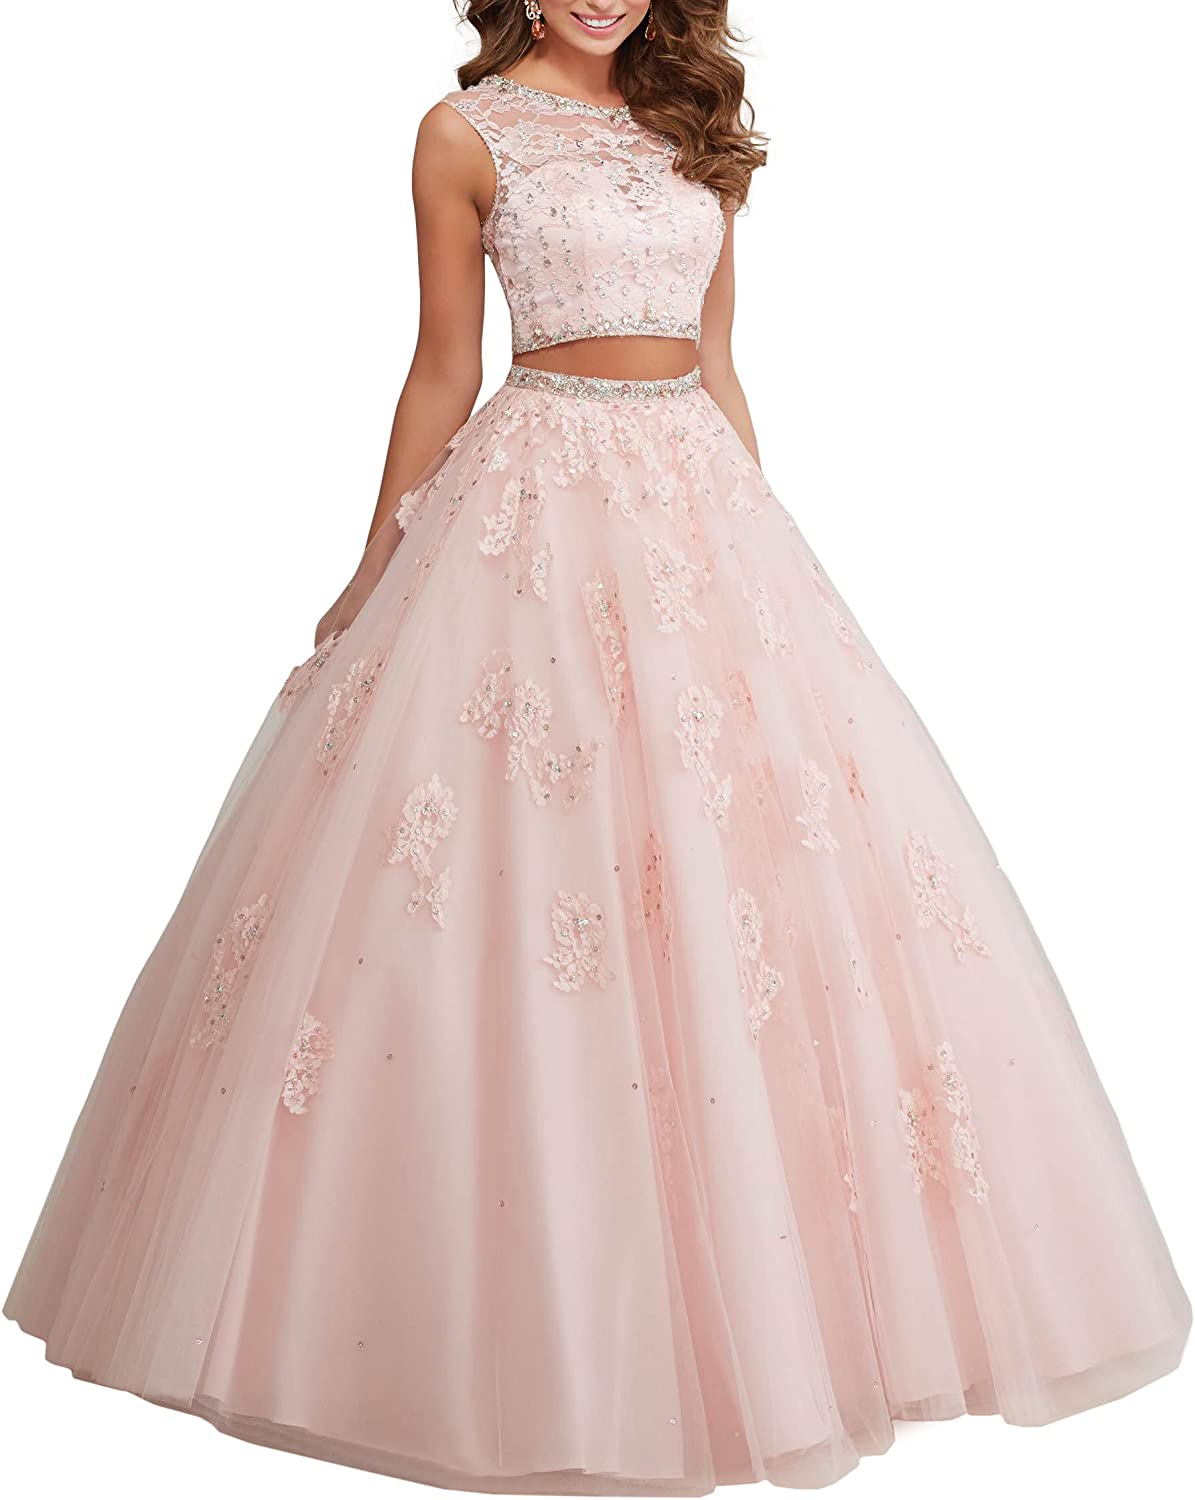 Two Piece Tulle Ball Gown Party Dress Beaded Lace Applique Quinceanera Dress